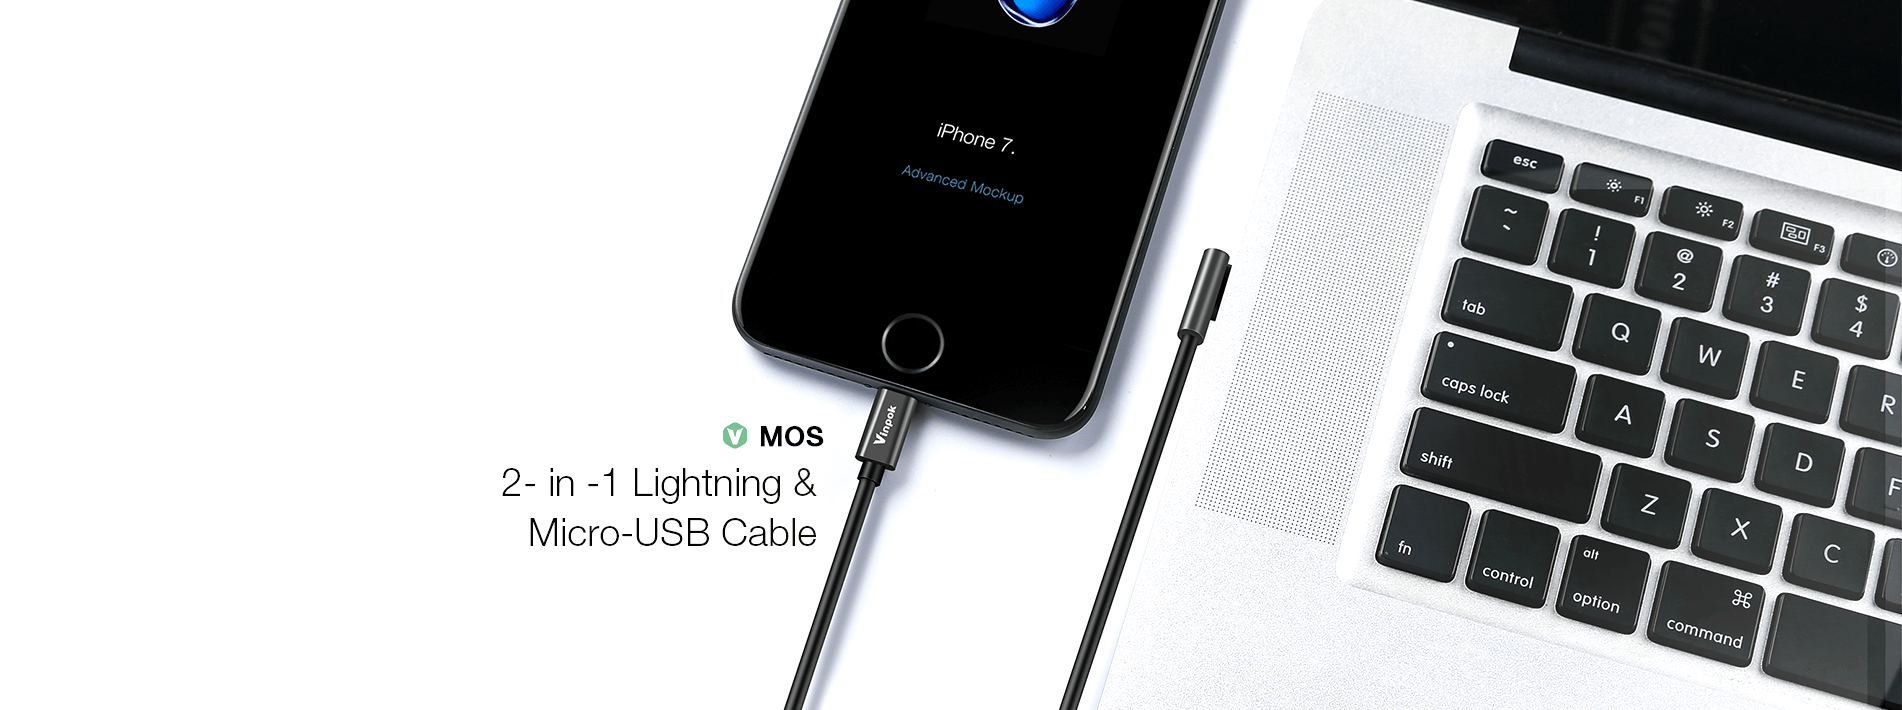 2 in 1 lightning & micro-usb cable